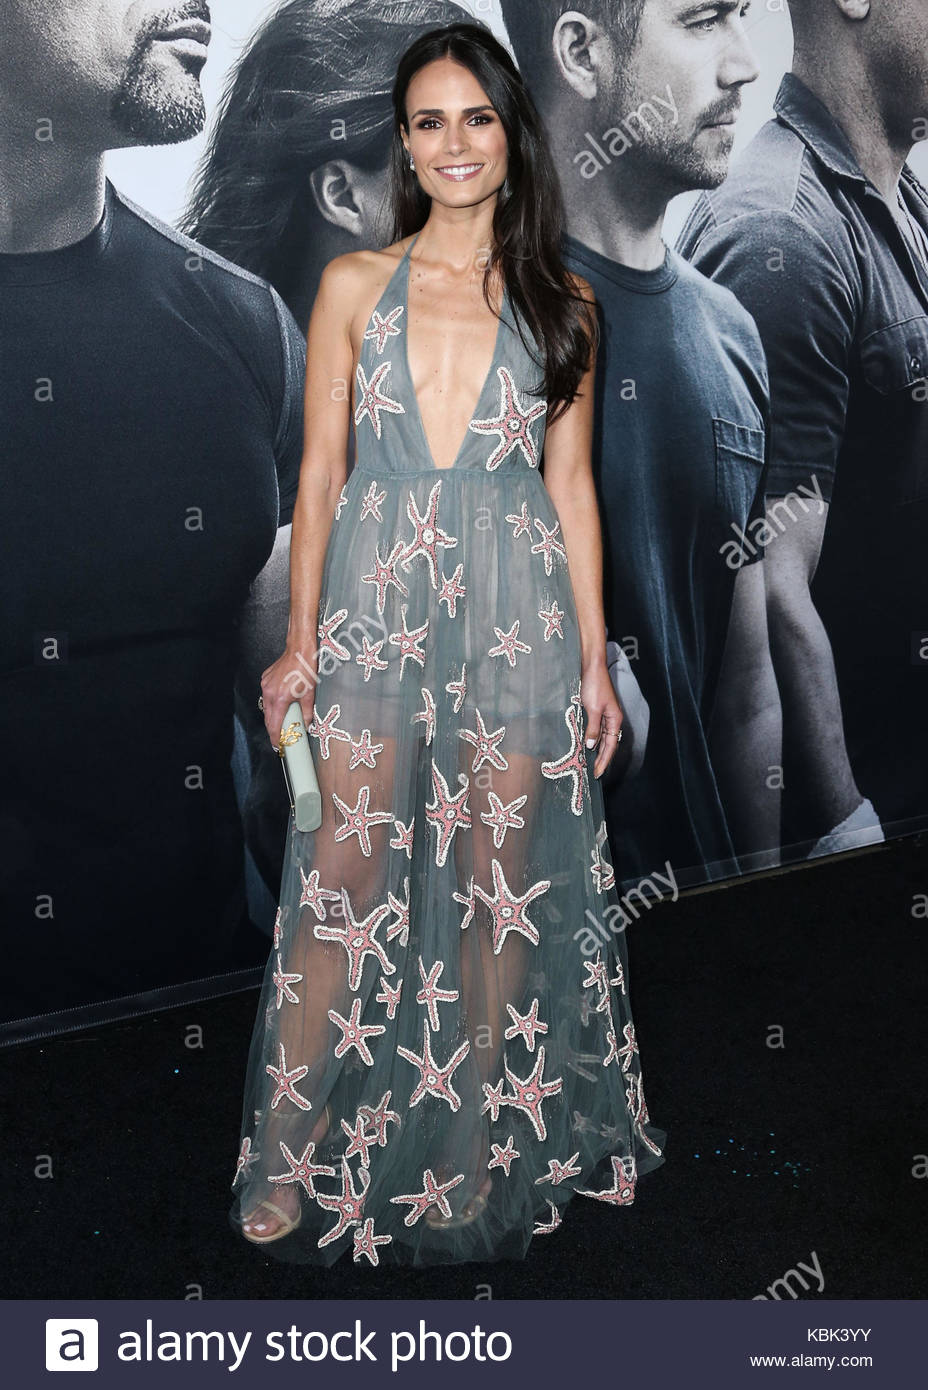 The purpose Jordana brewster cleavage really. happens